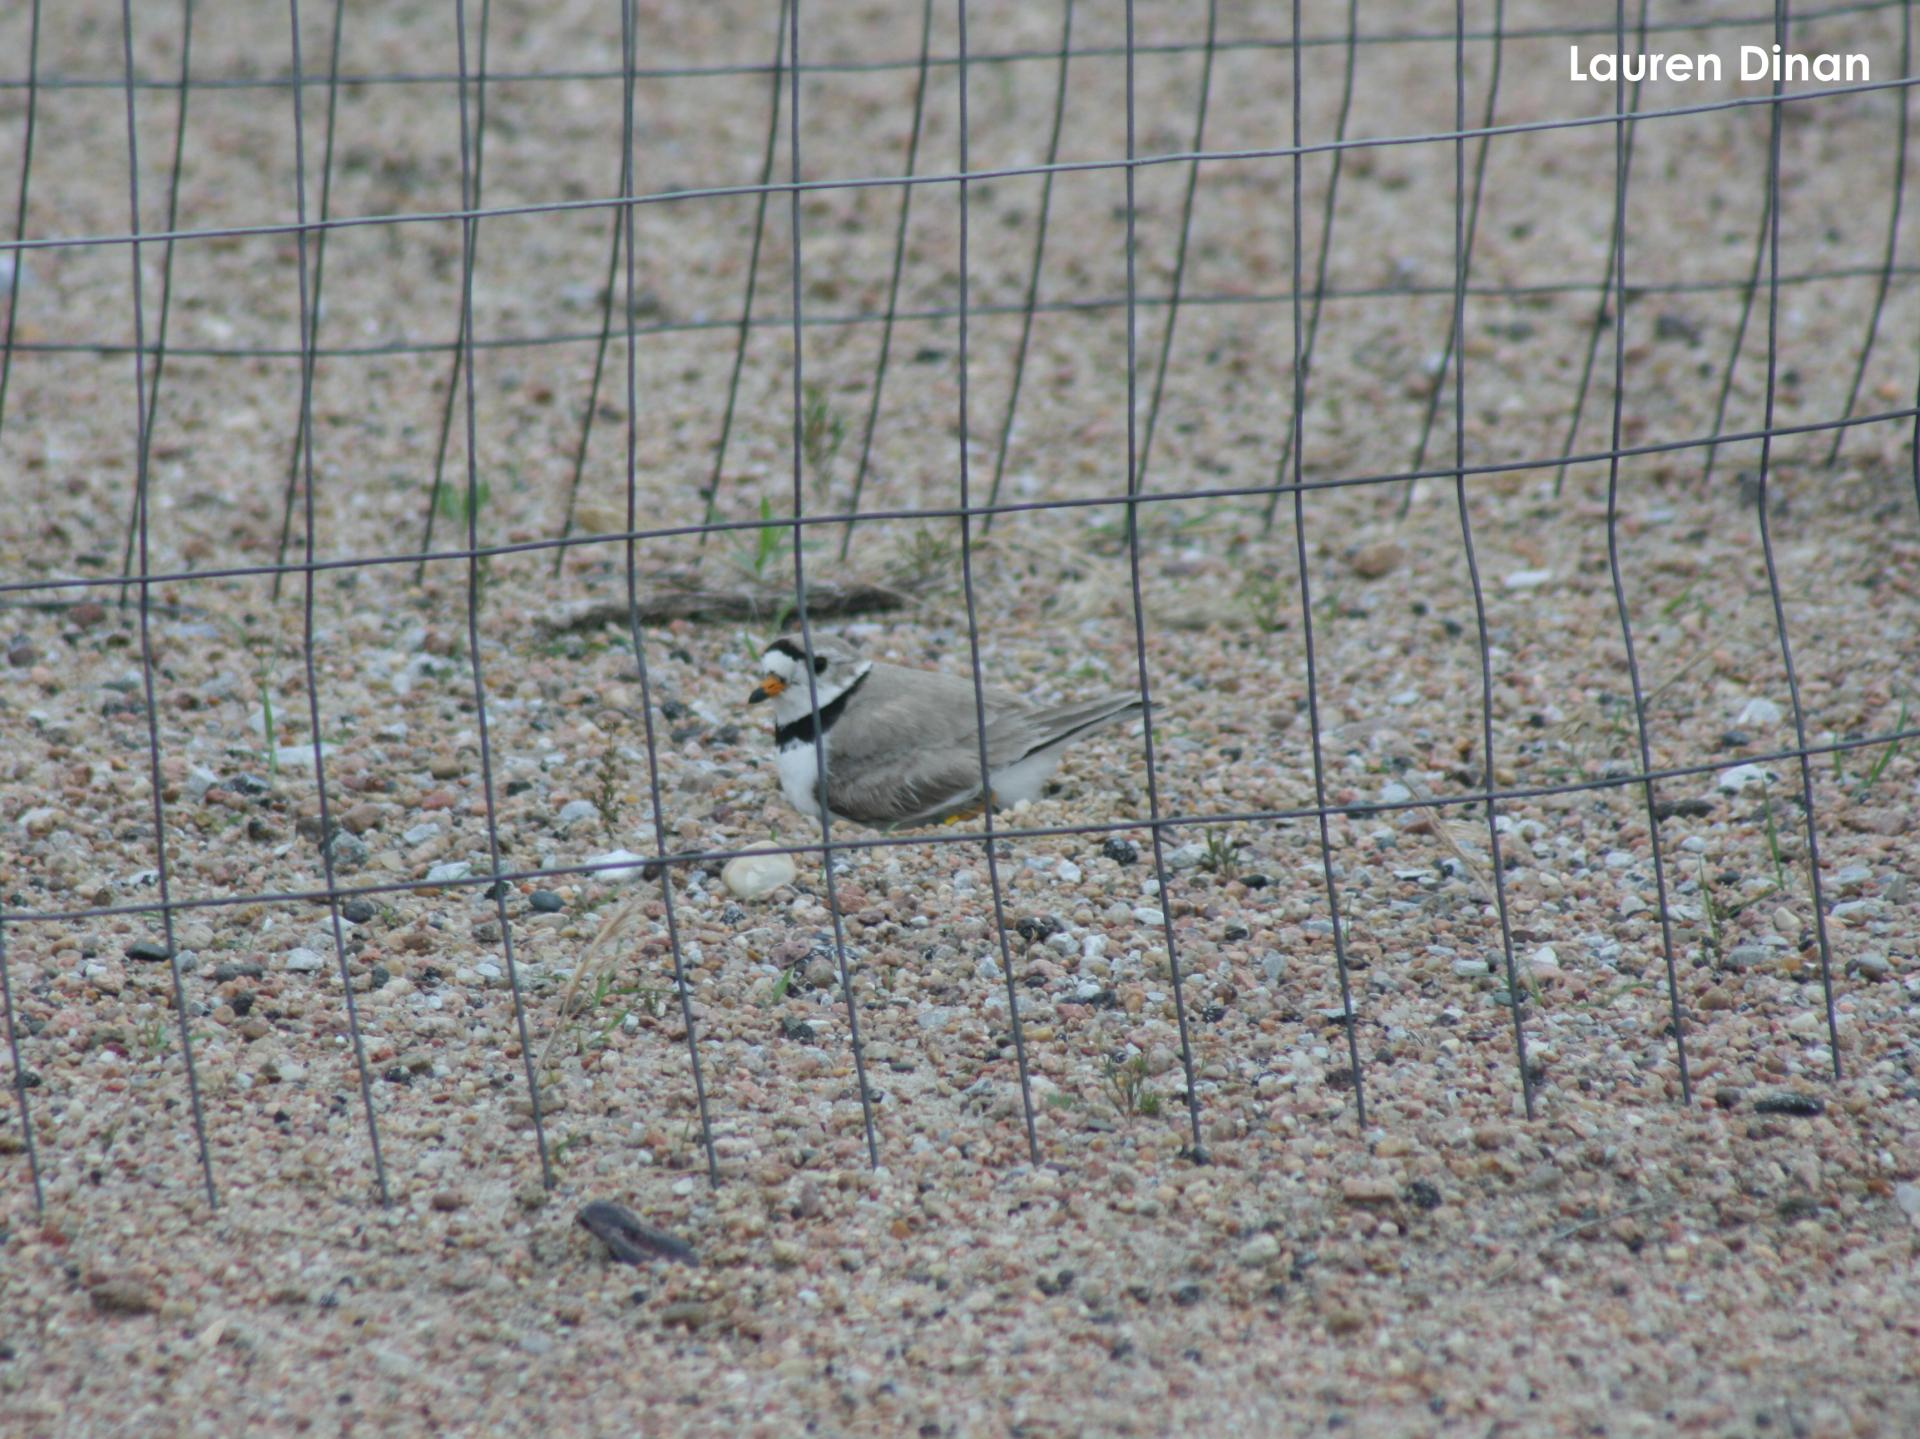 Adult plover on nest in the protective exclosure